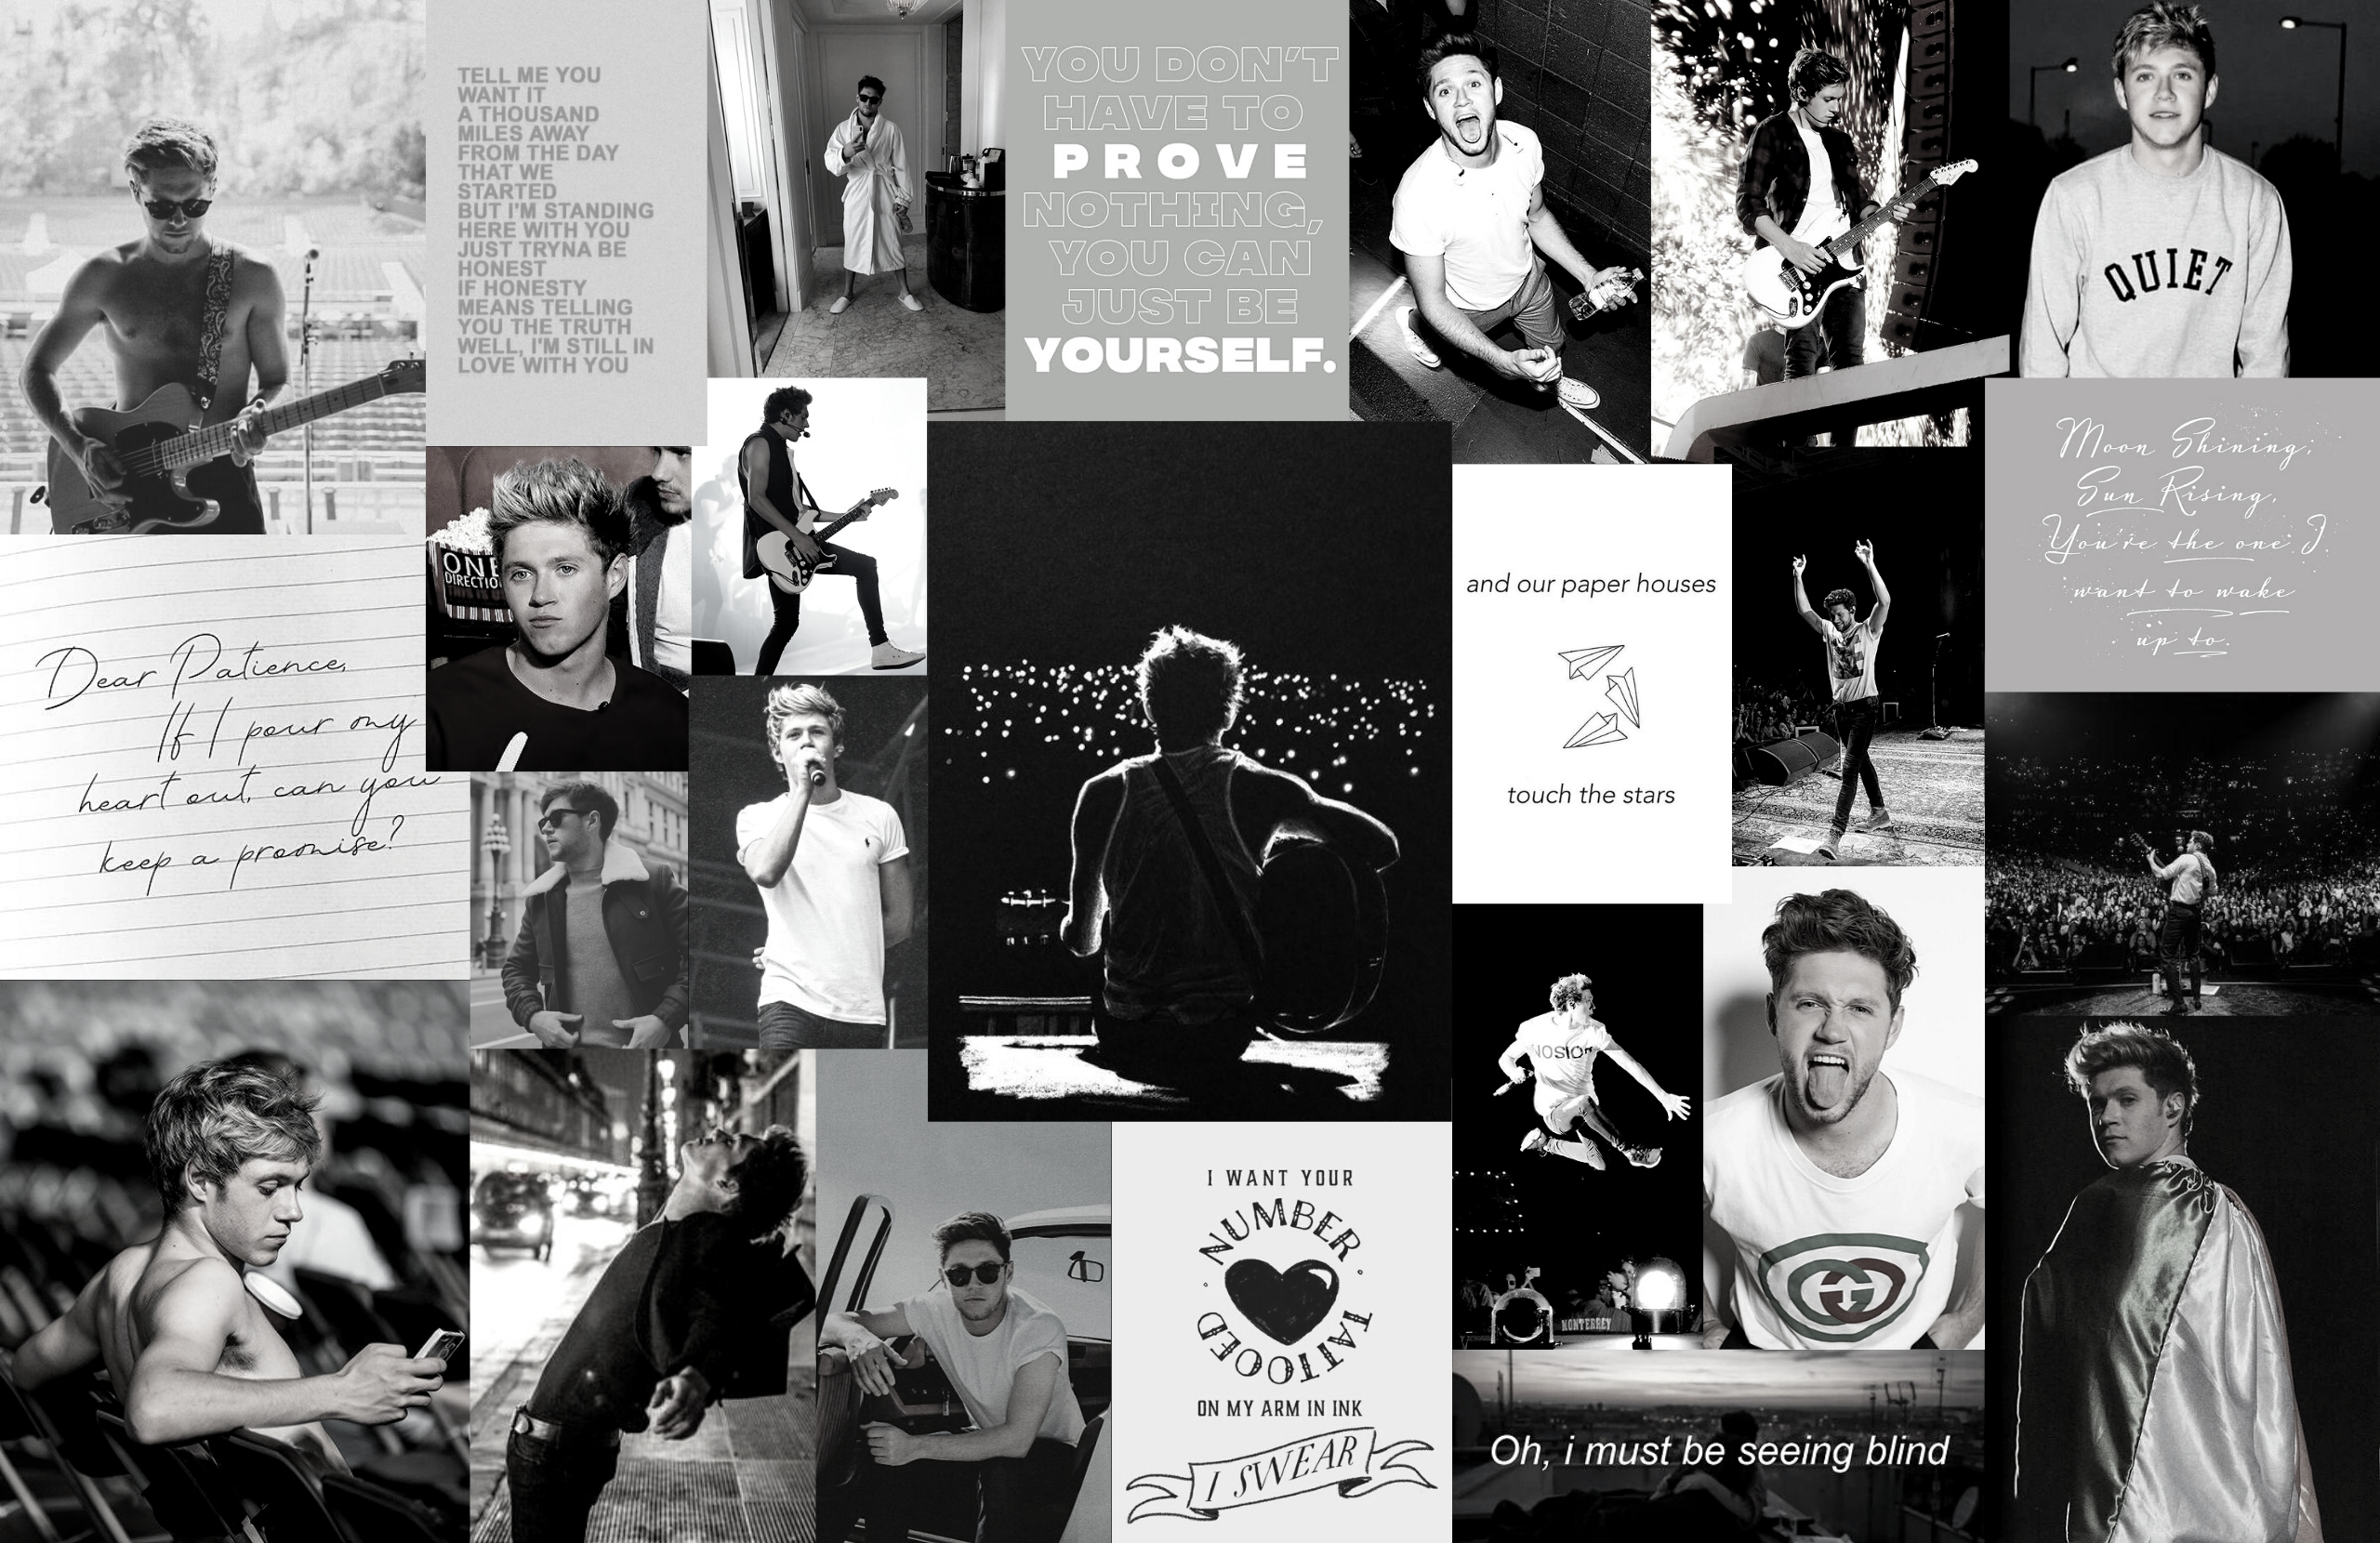 Niall Horan Aesthetic Wallpaper Collage | Etsy in 2021 ...